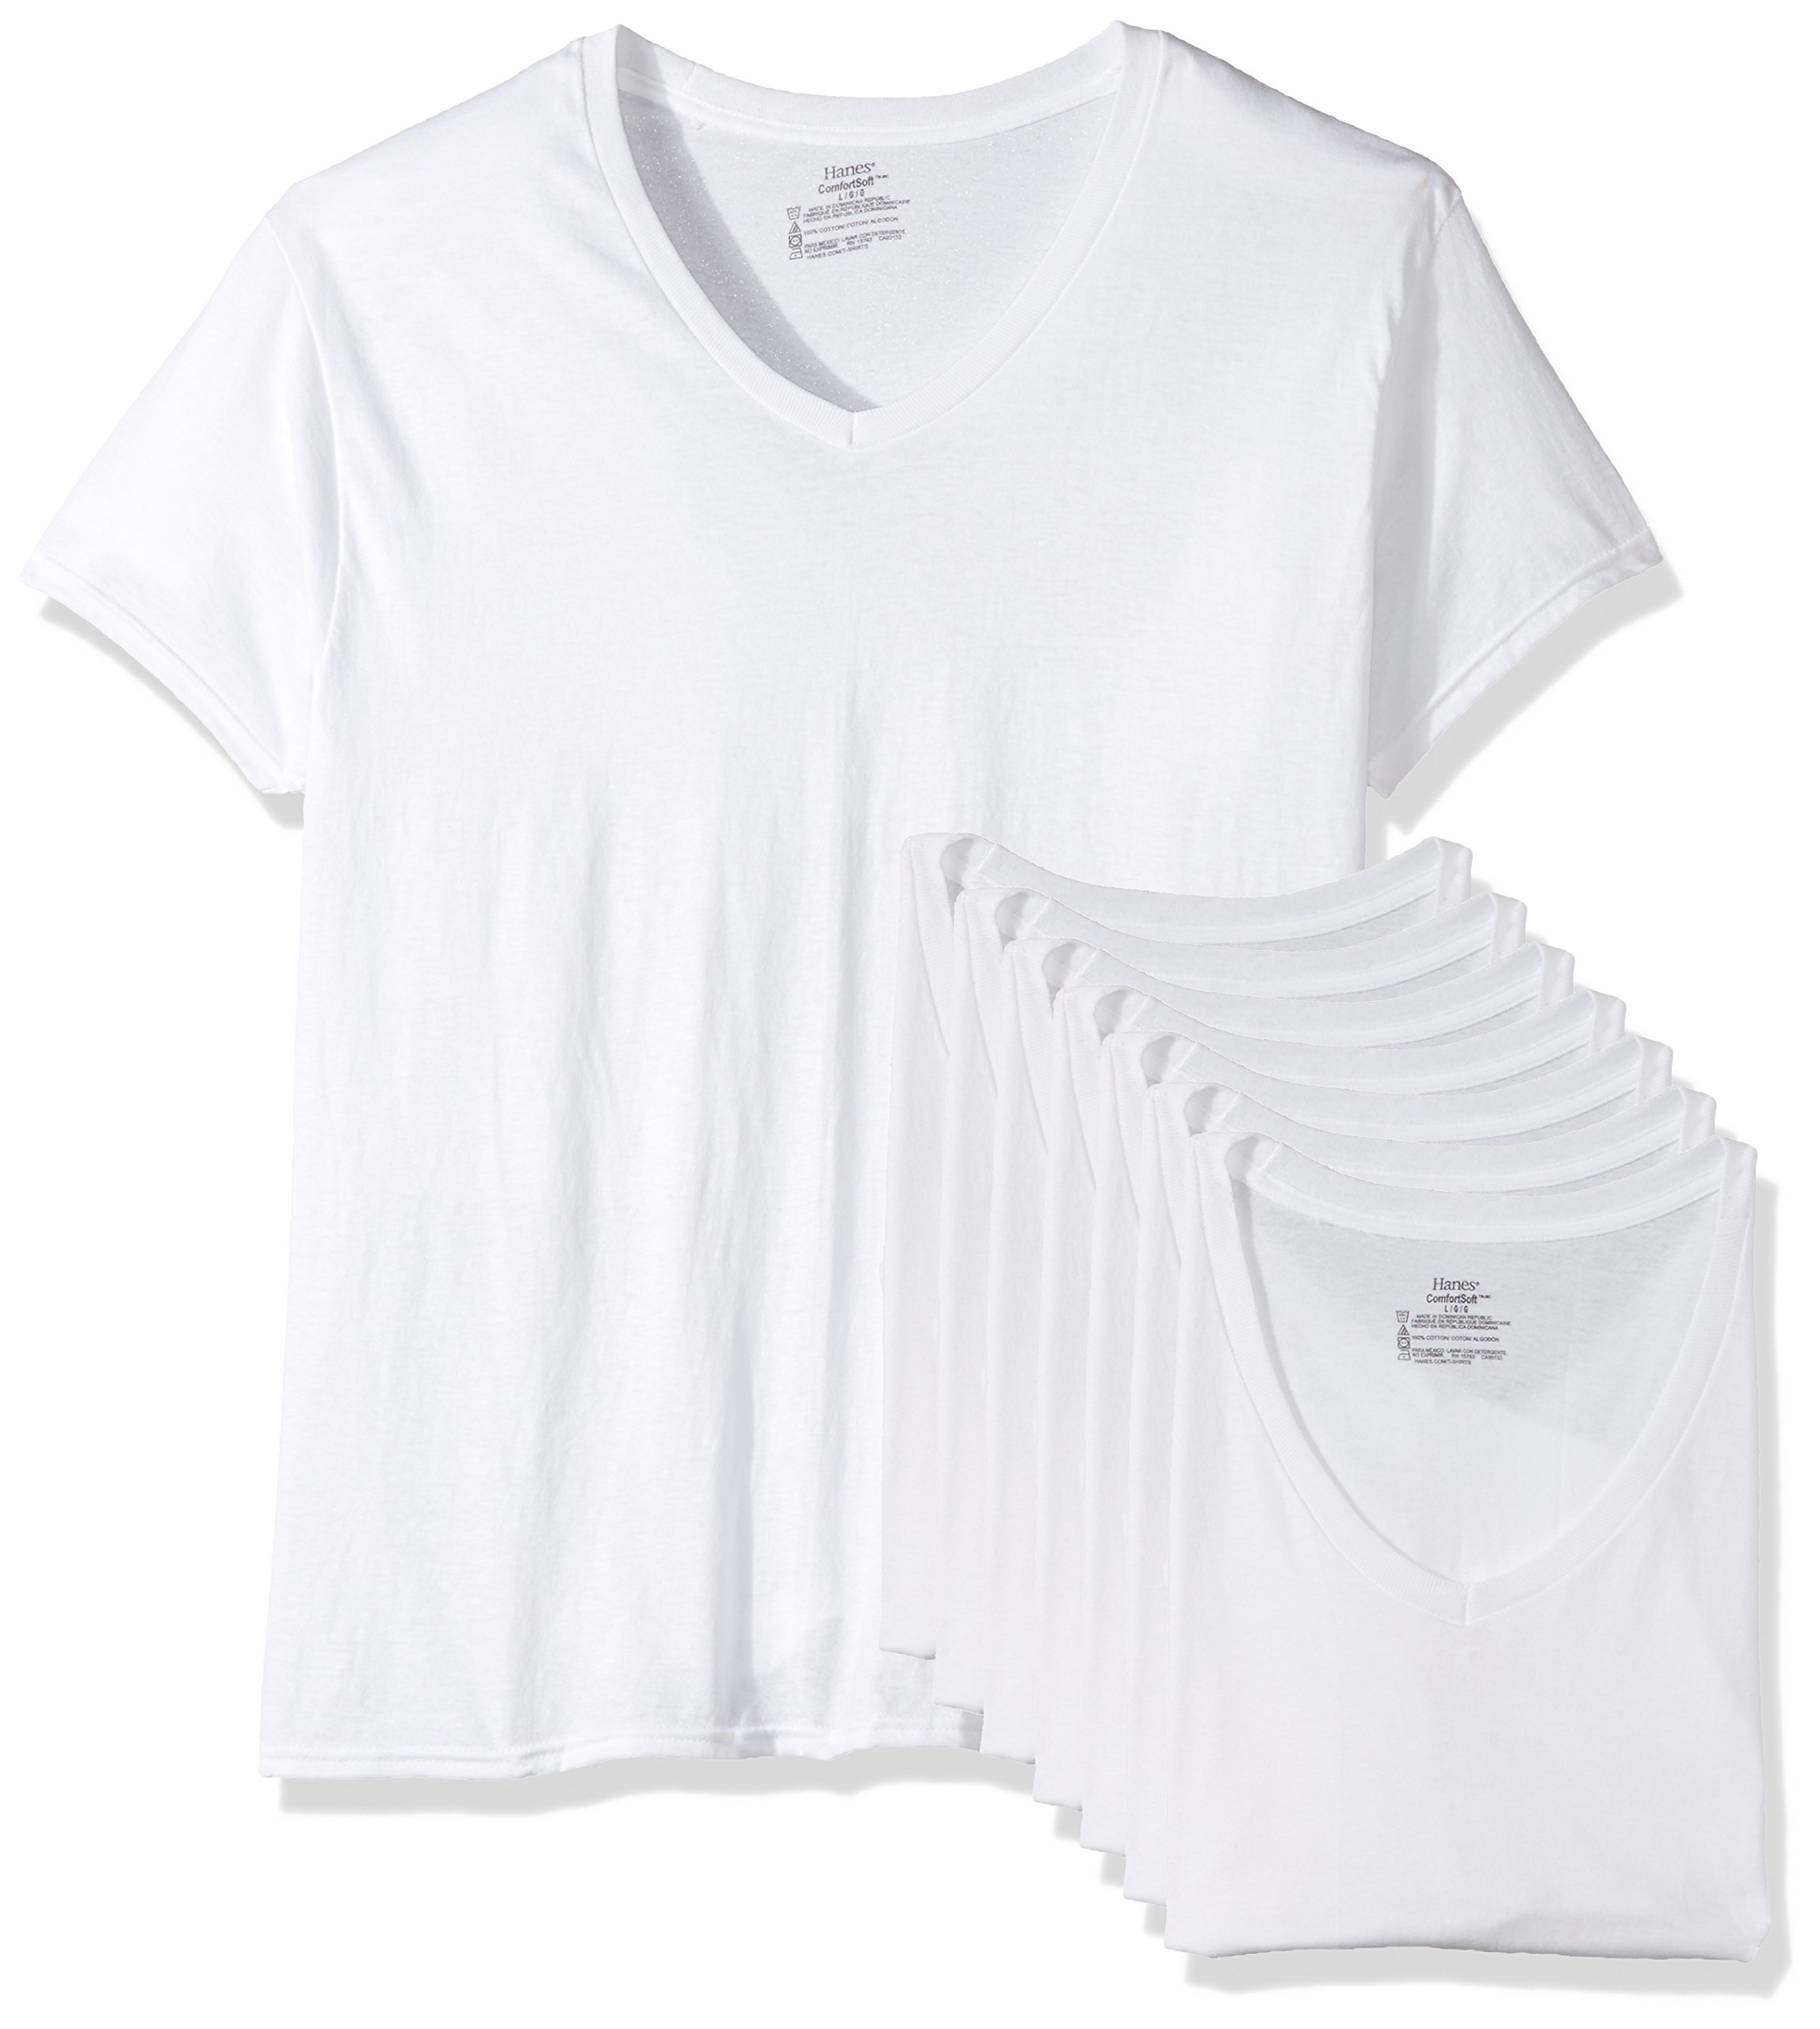 Hanes Men's 7-Pack Comfortsoft Tagless V-Neck T-Shirt (Bonus Pack), White, Meduim by Hanes